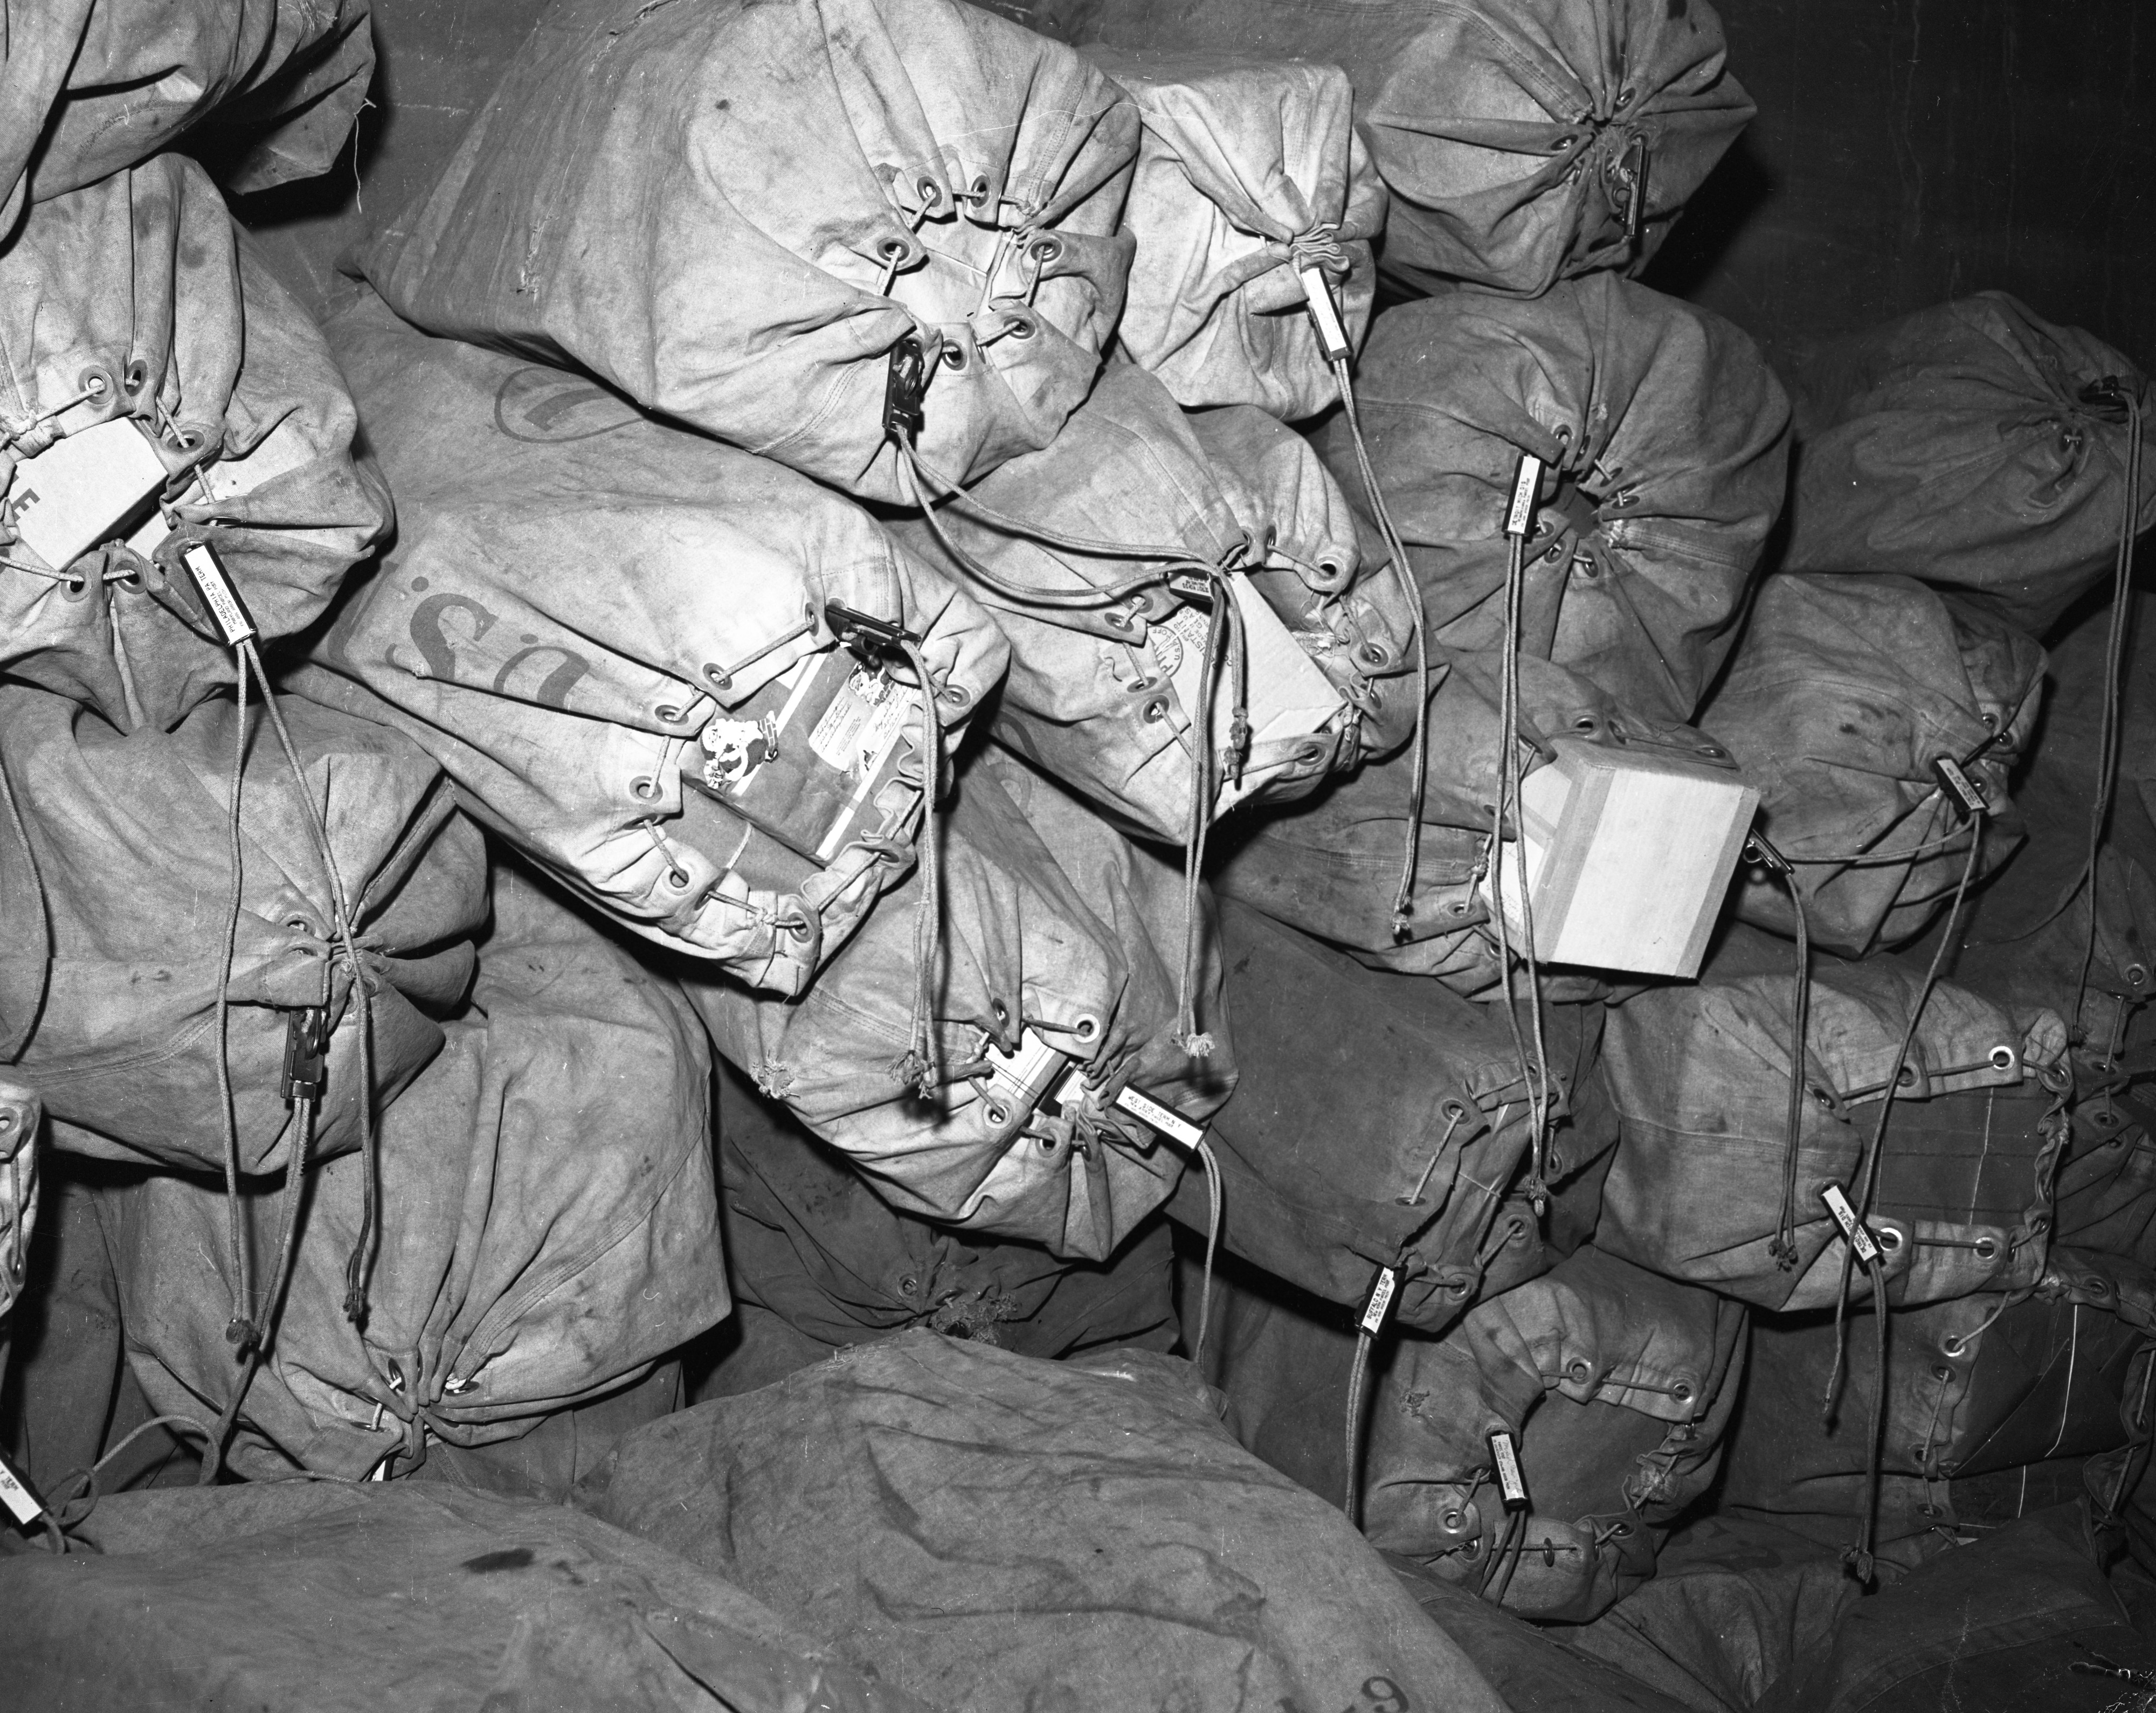 Bags of post at the Ann Arbor Post Office during the Christmas rush, December 1955 image